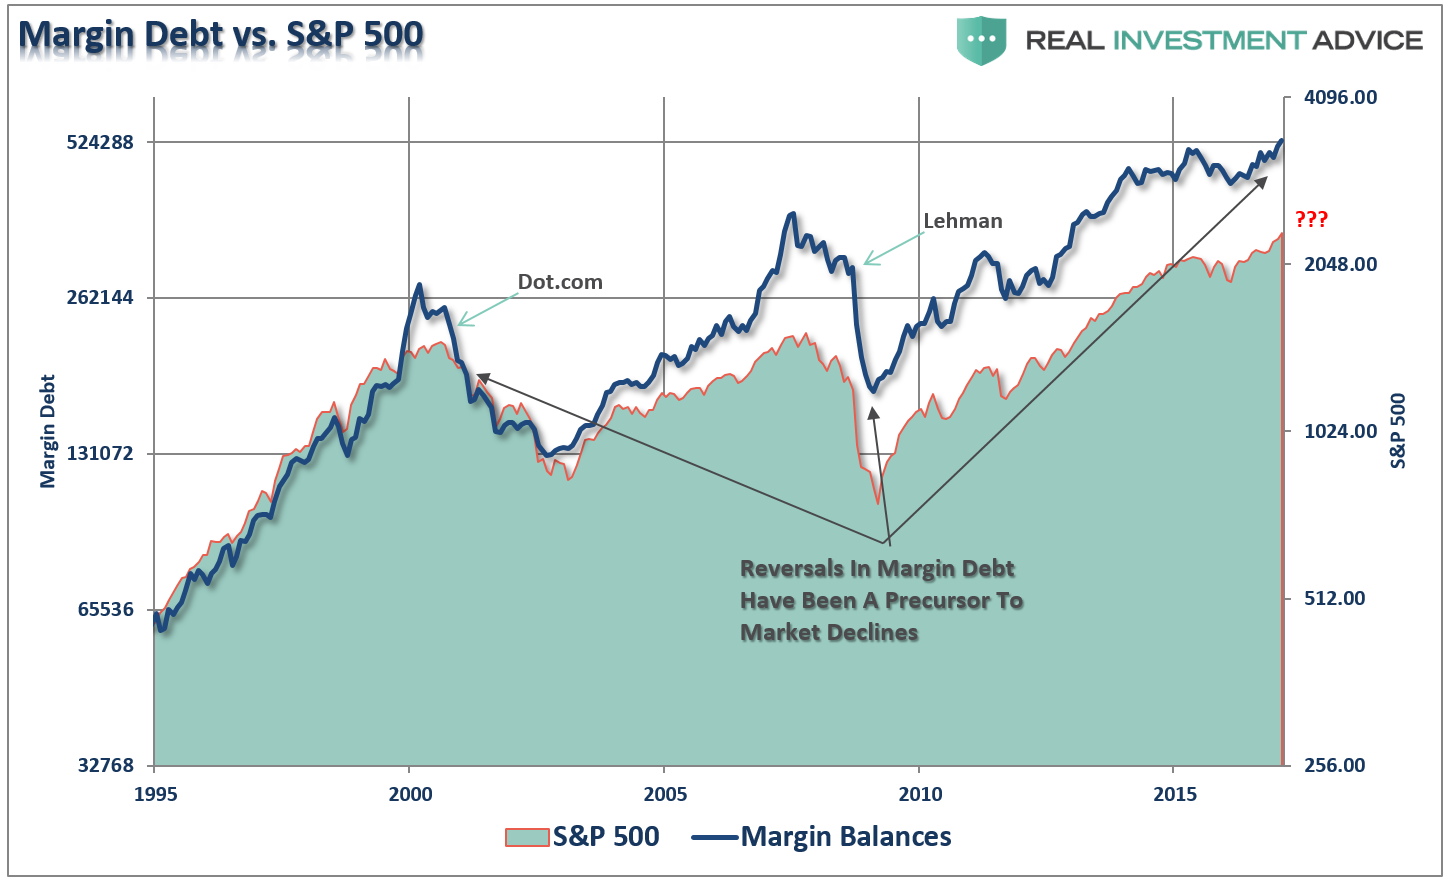 Debt Vs. S&P 500